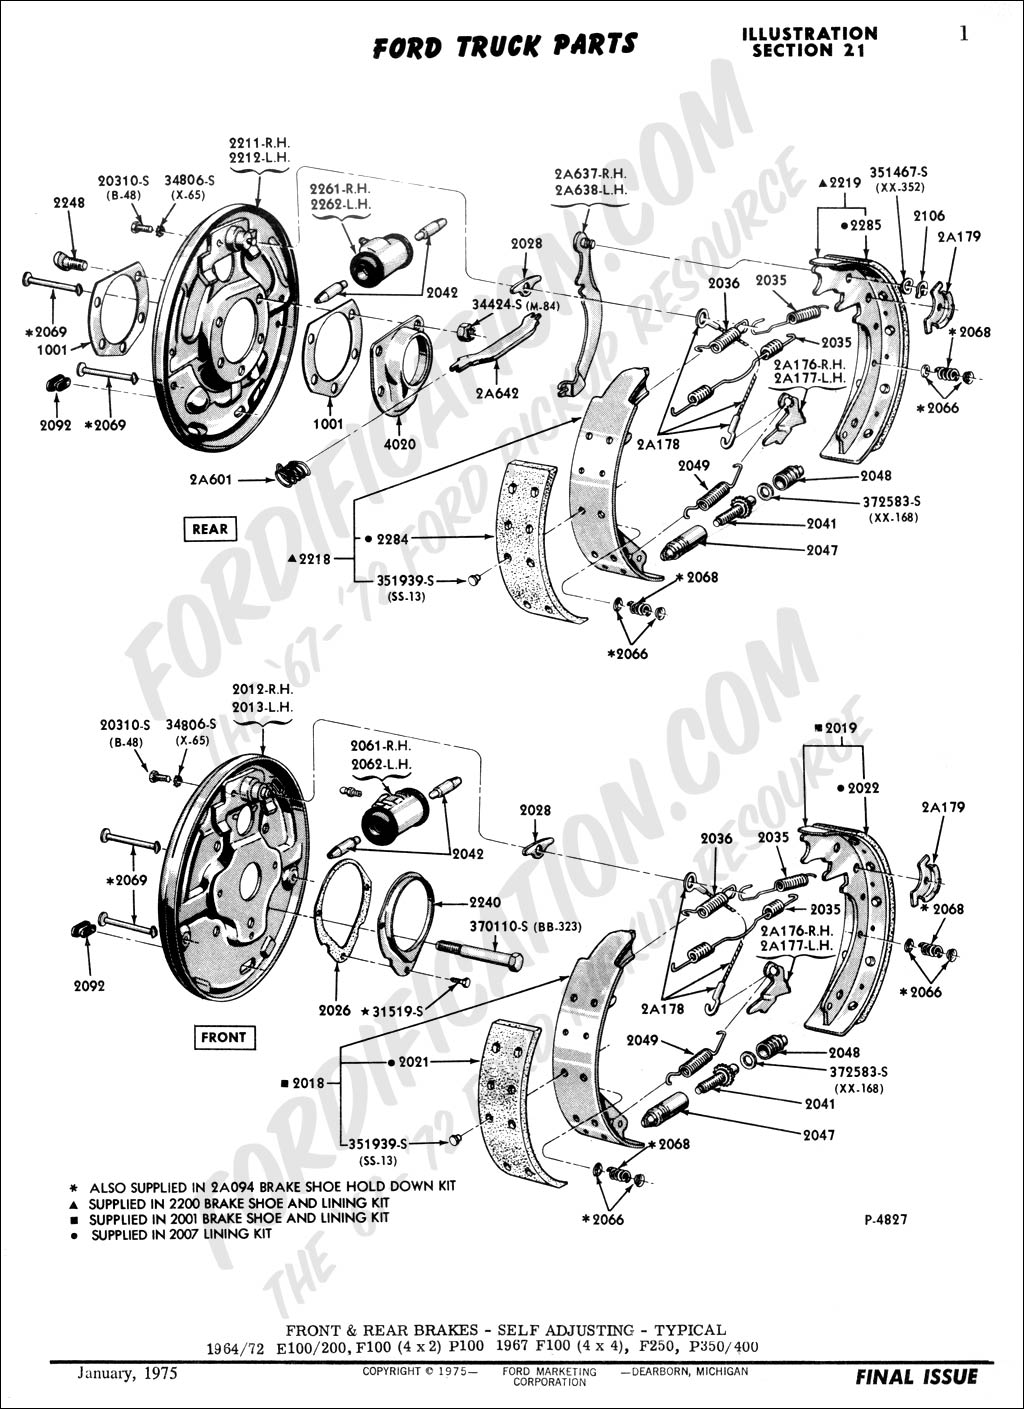 Mercury Brakes Diagram Wiring Library Pontiac Ford Truck Technical Drawings And Schematics Section B Brake Systems Related Components